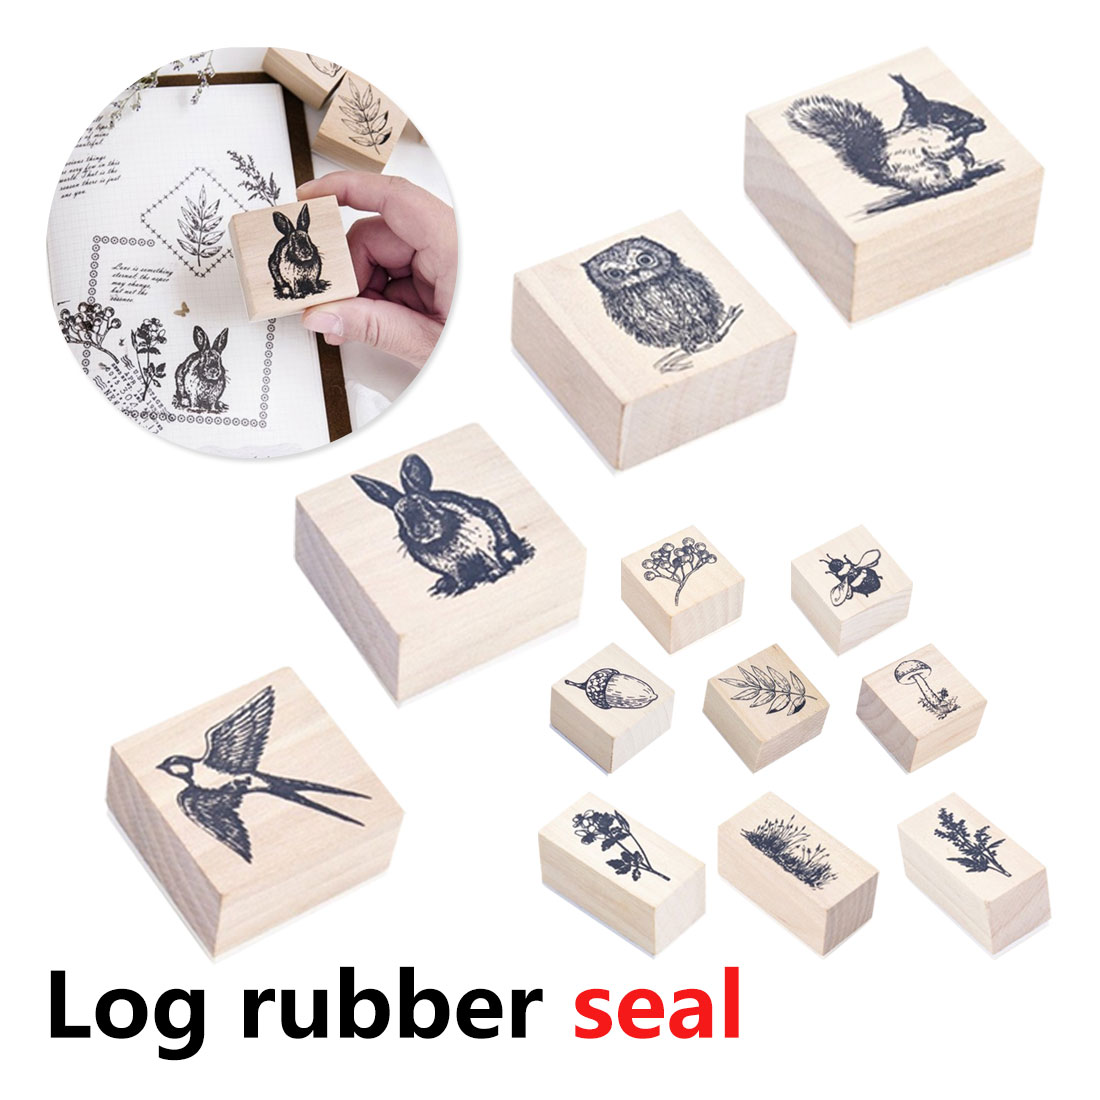 Stylish Vintage Cute Animal Plants Wooden Rubber Stamp 1PC  for Scrapbooking Painting Cards Decor DIY Craft